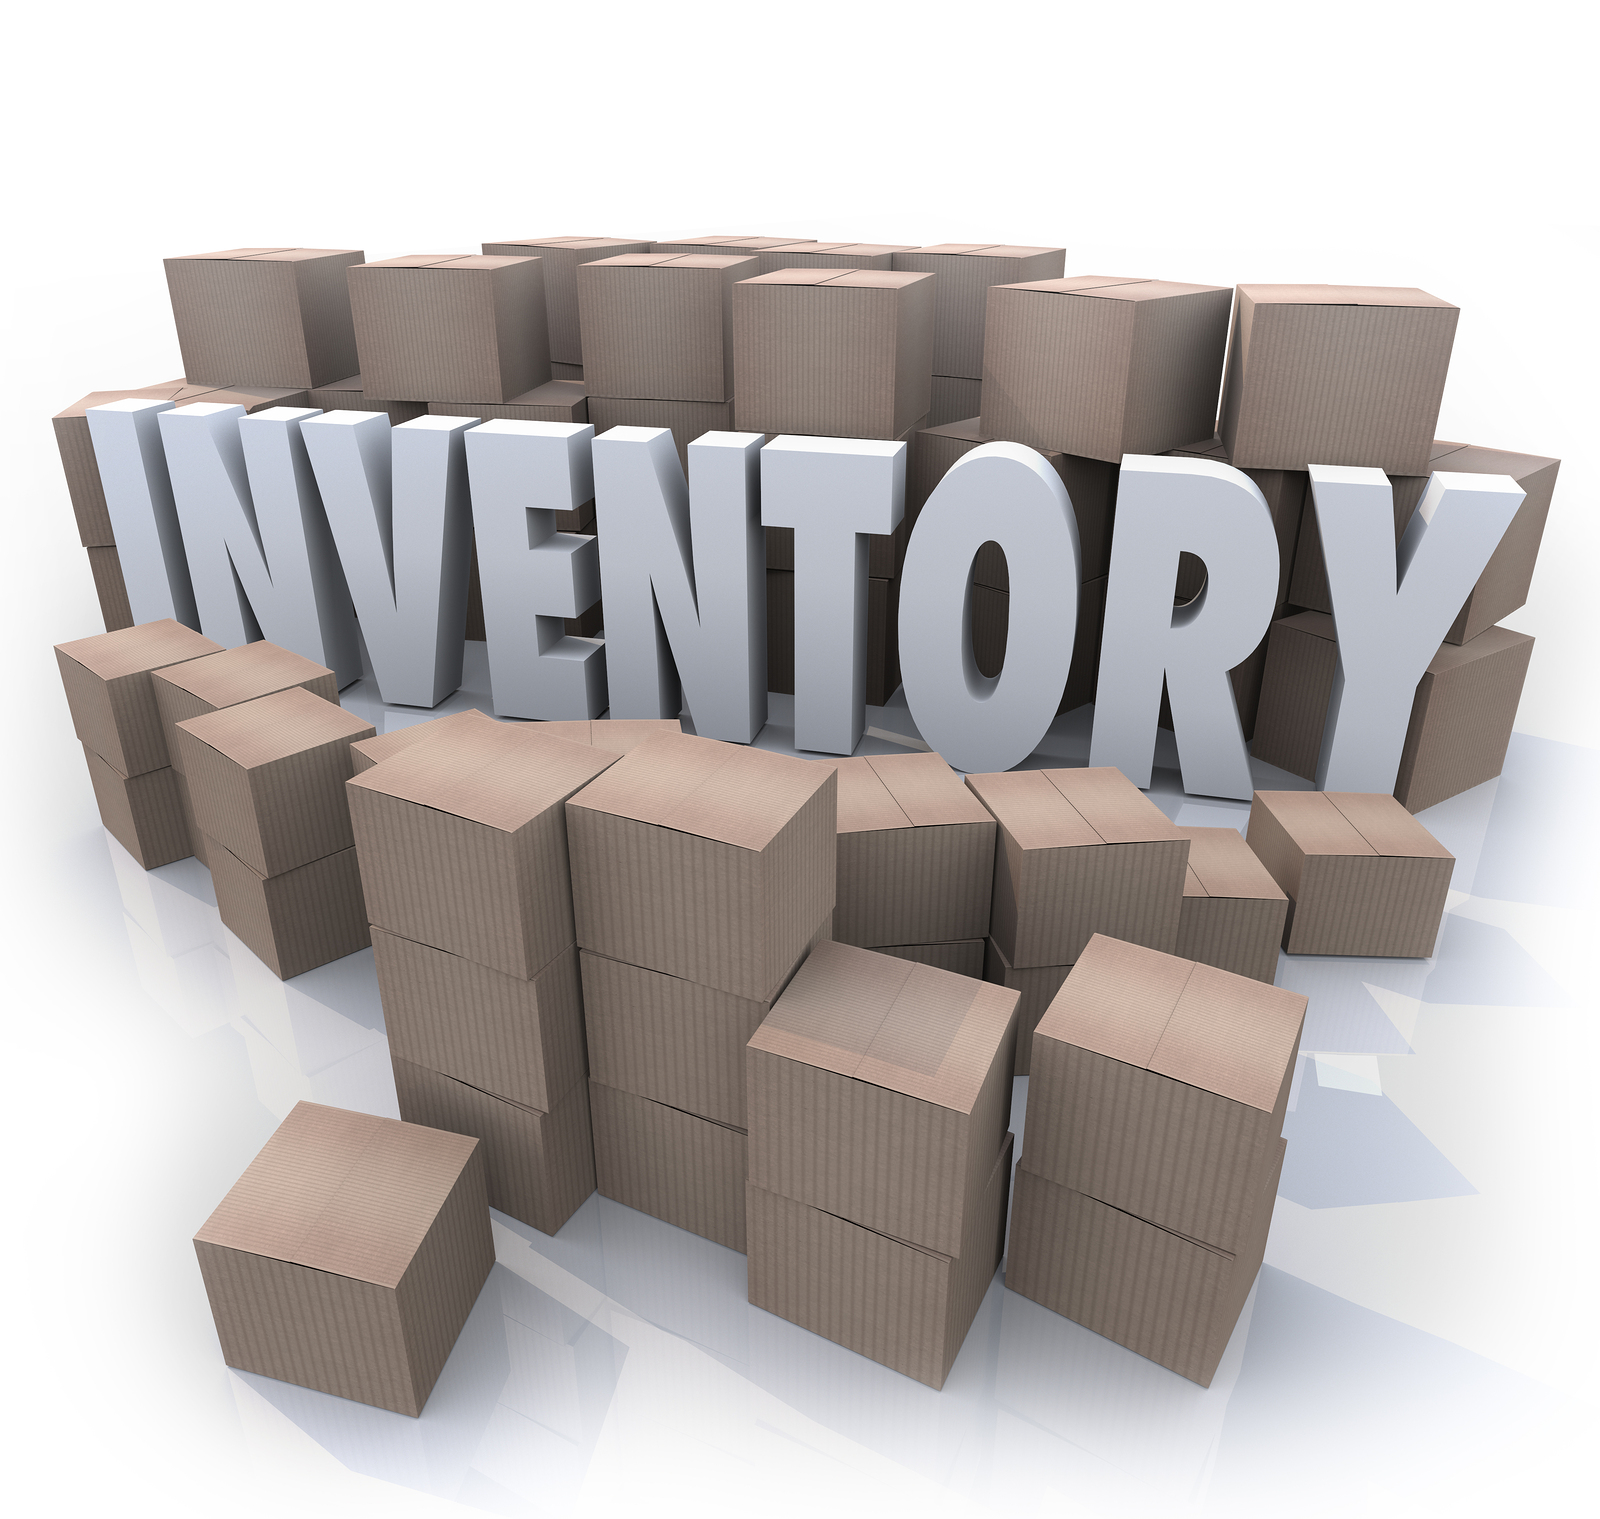 Top 5 Warehouse Challenges and How to Overcome Them - Comfori